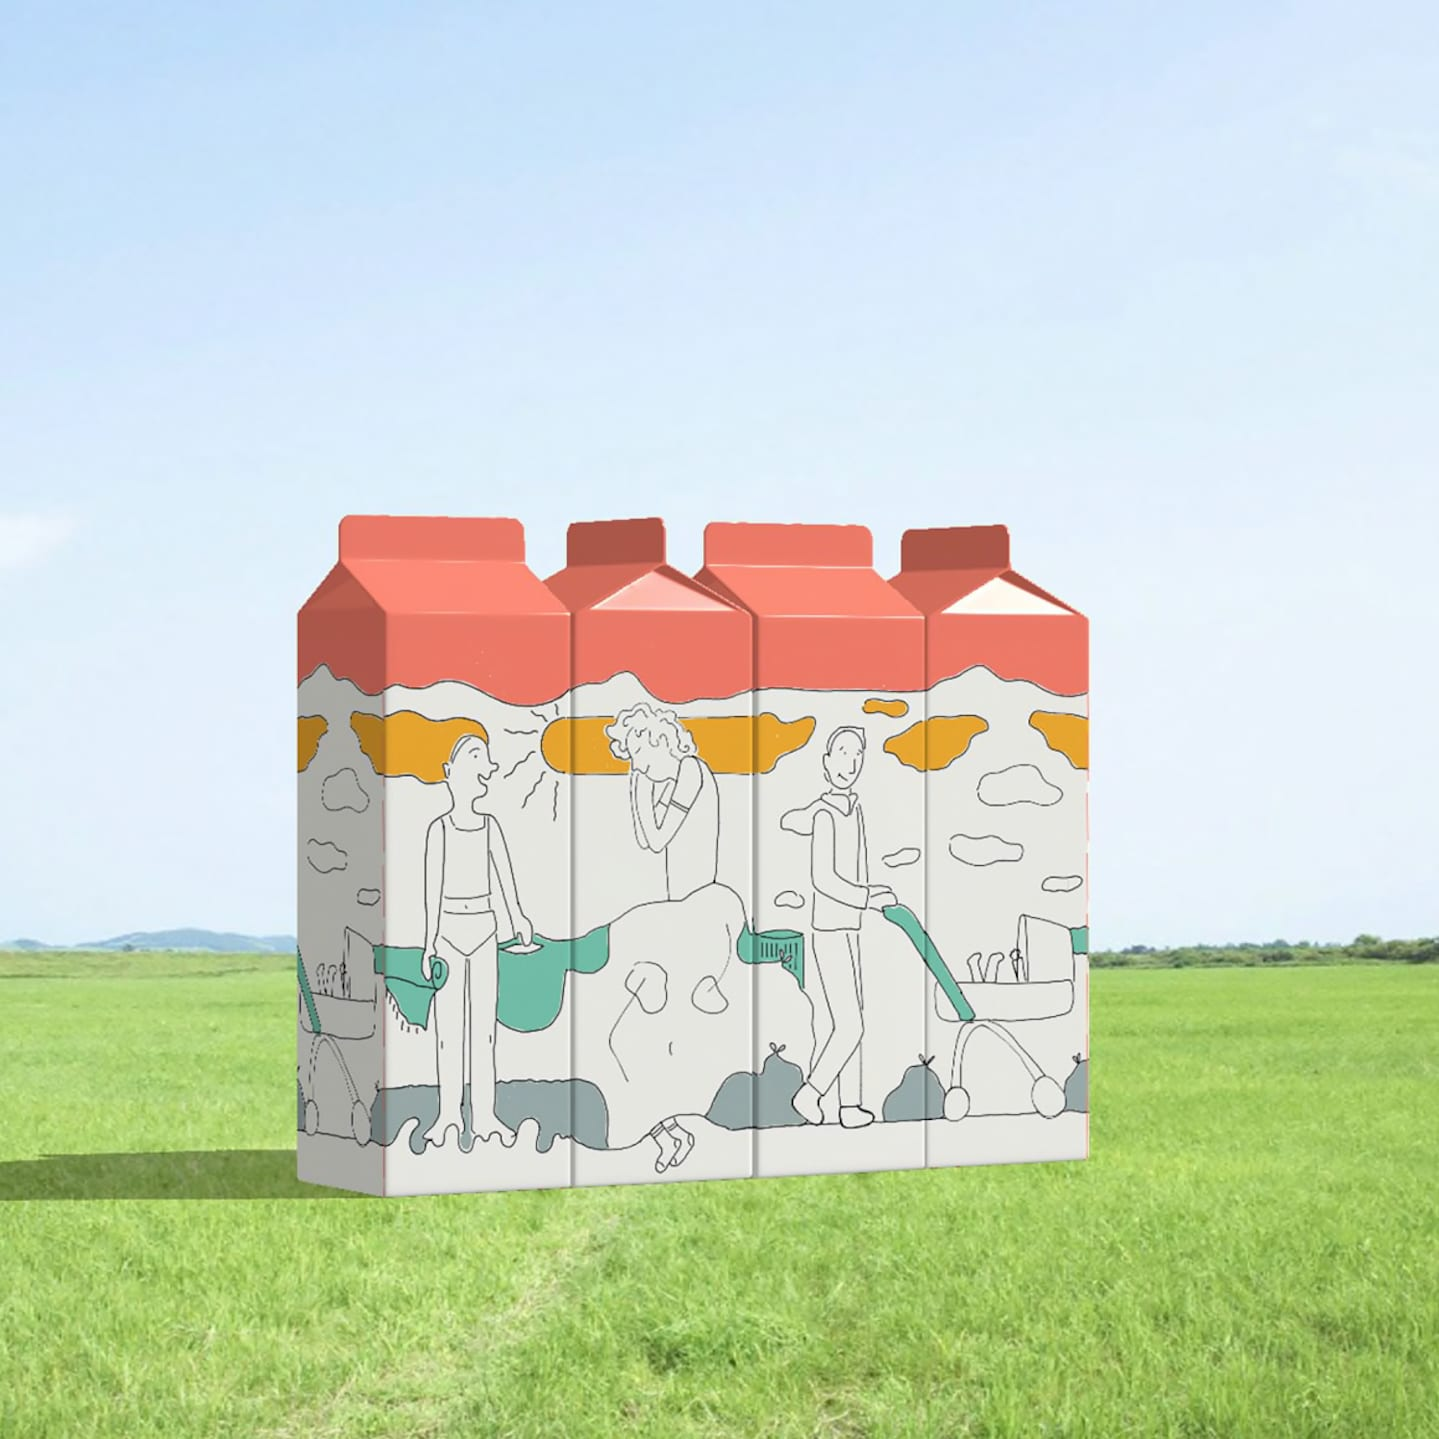 Four large drink cartons in a field